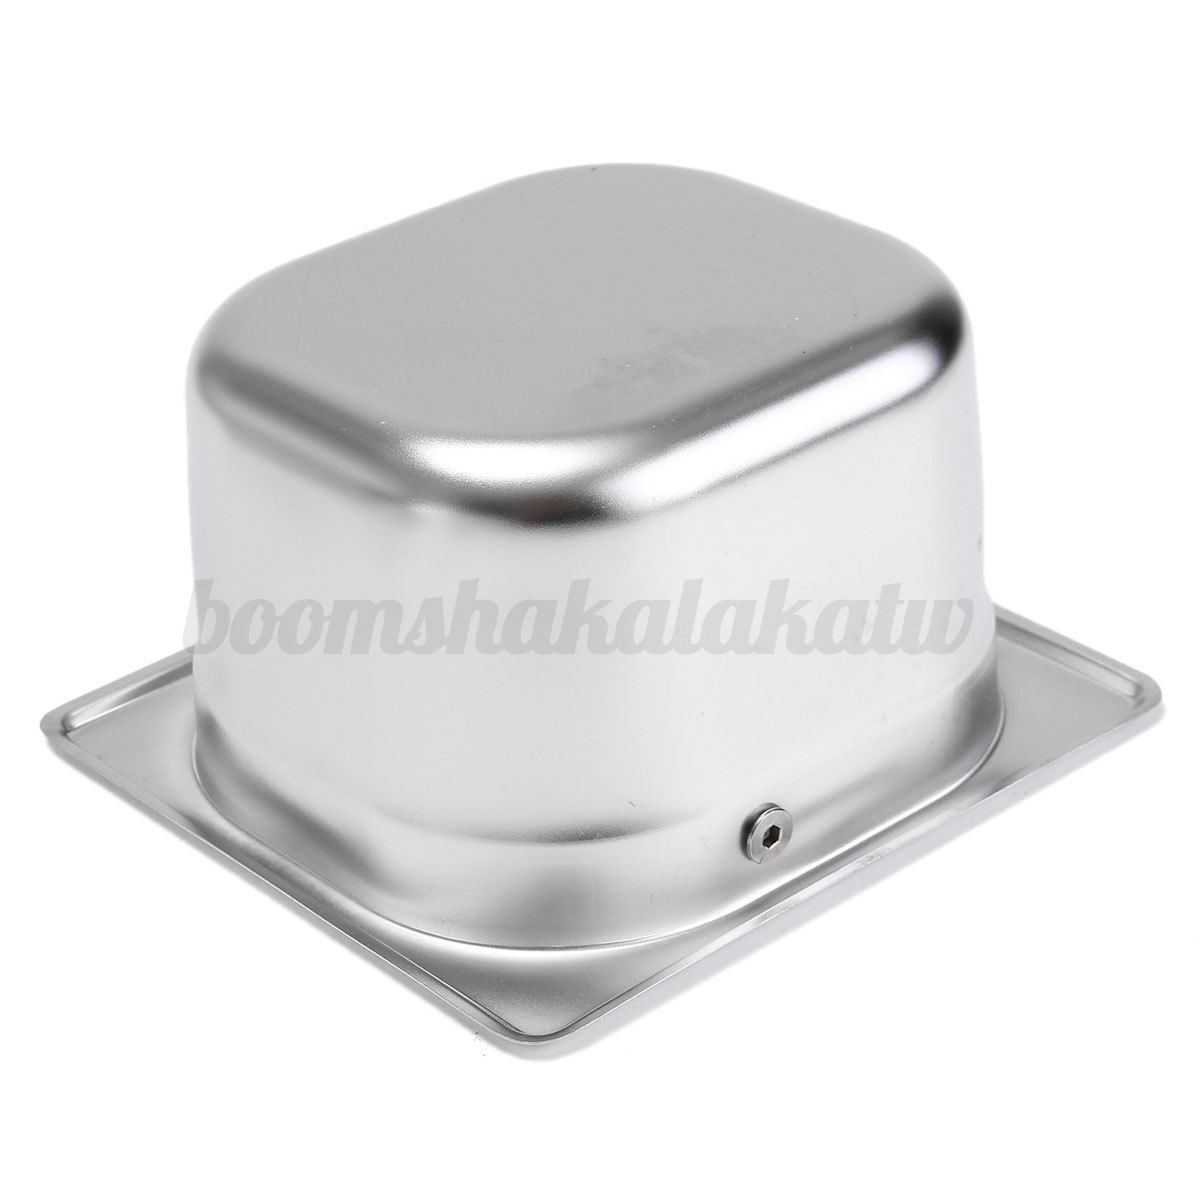 Stainless Knock Box Flip Bang Recycle Amp Rubber Bar For